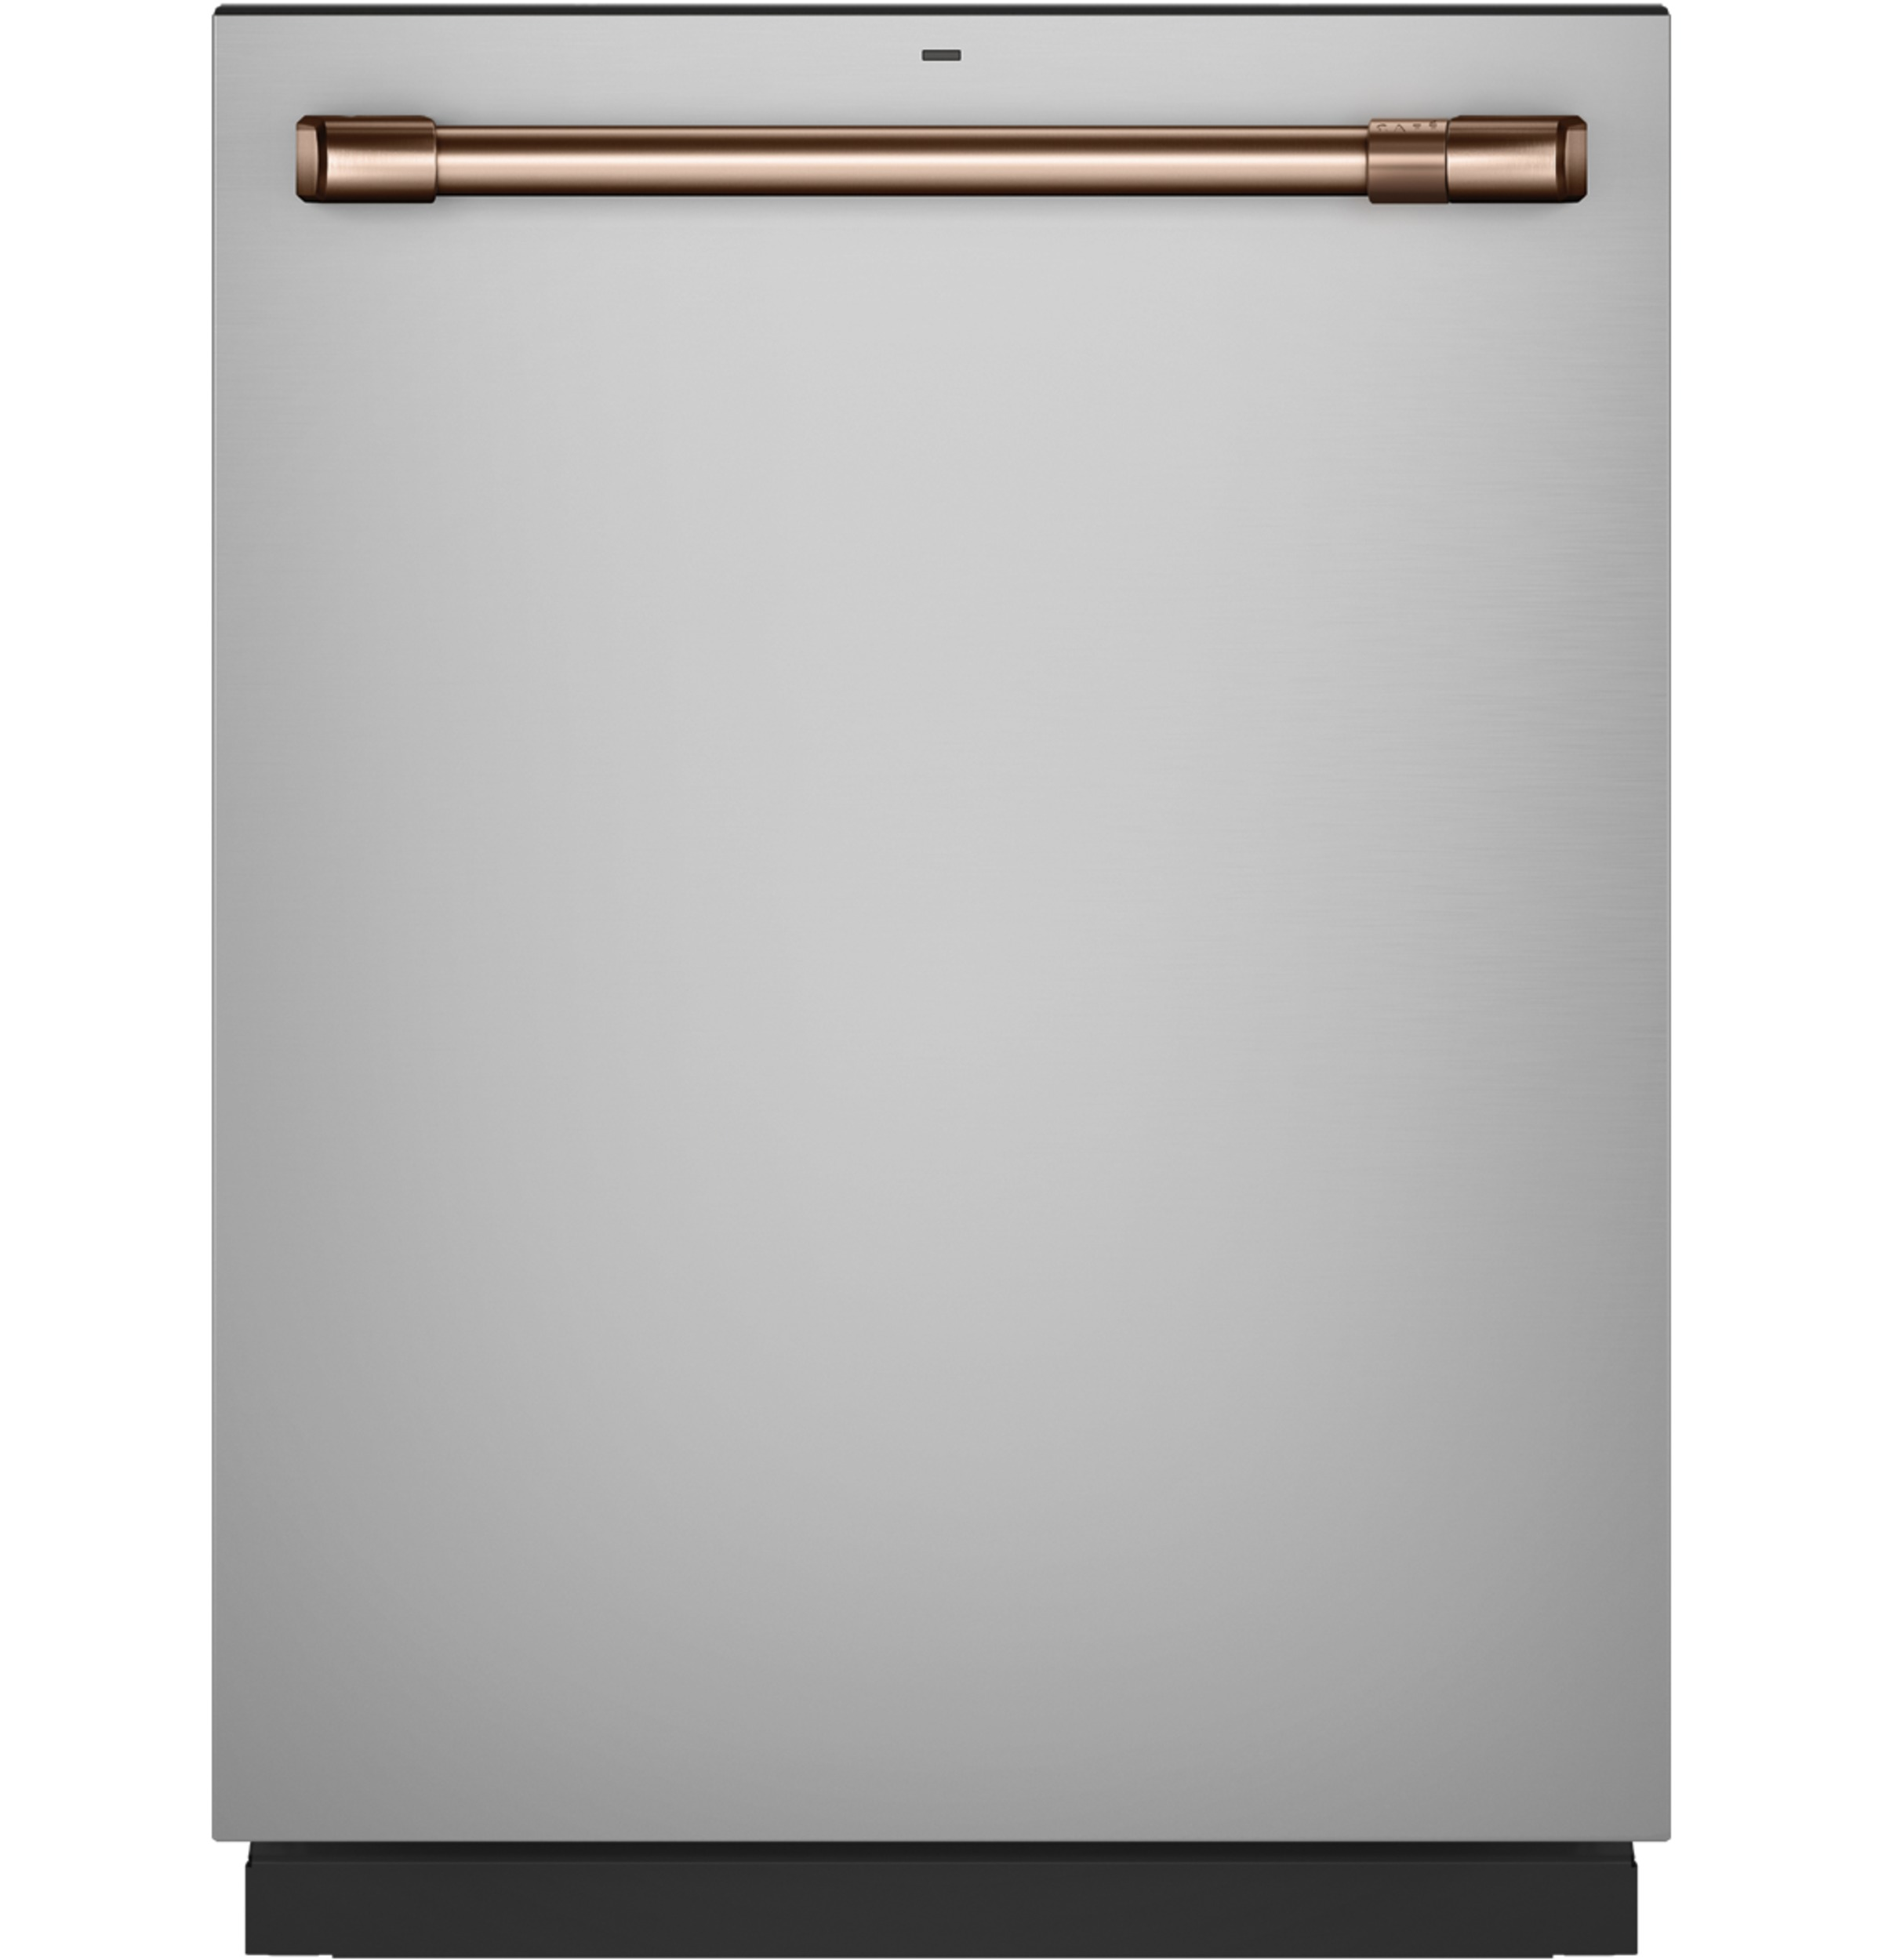 Model: CDT800P2NS1 | Cafe Café™ Stainless Interior Built-In Dishwasher with Hidden Controls